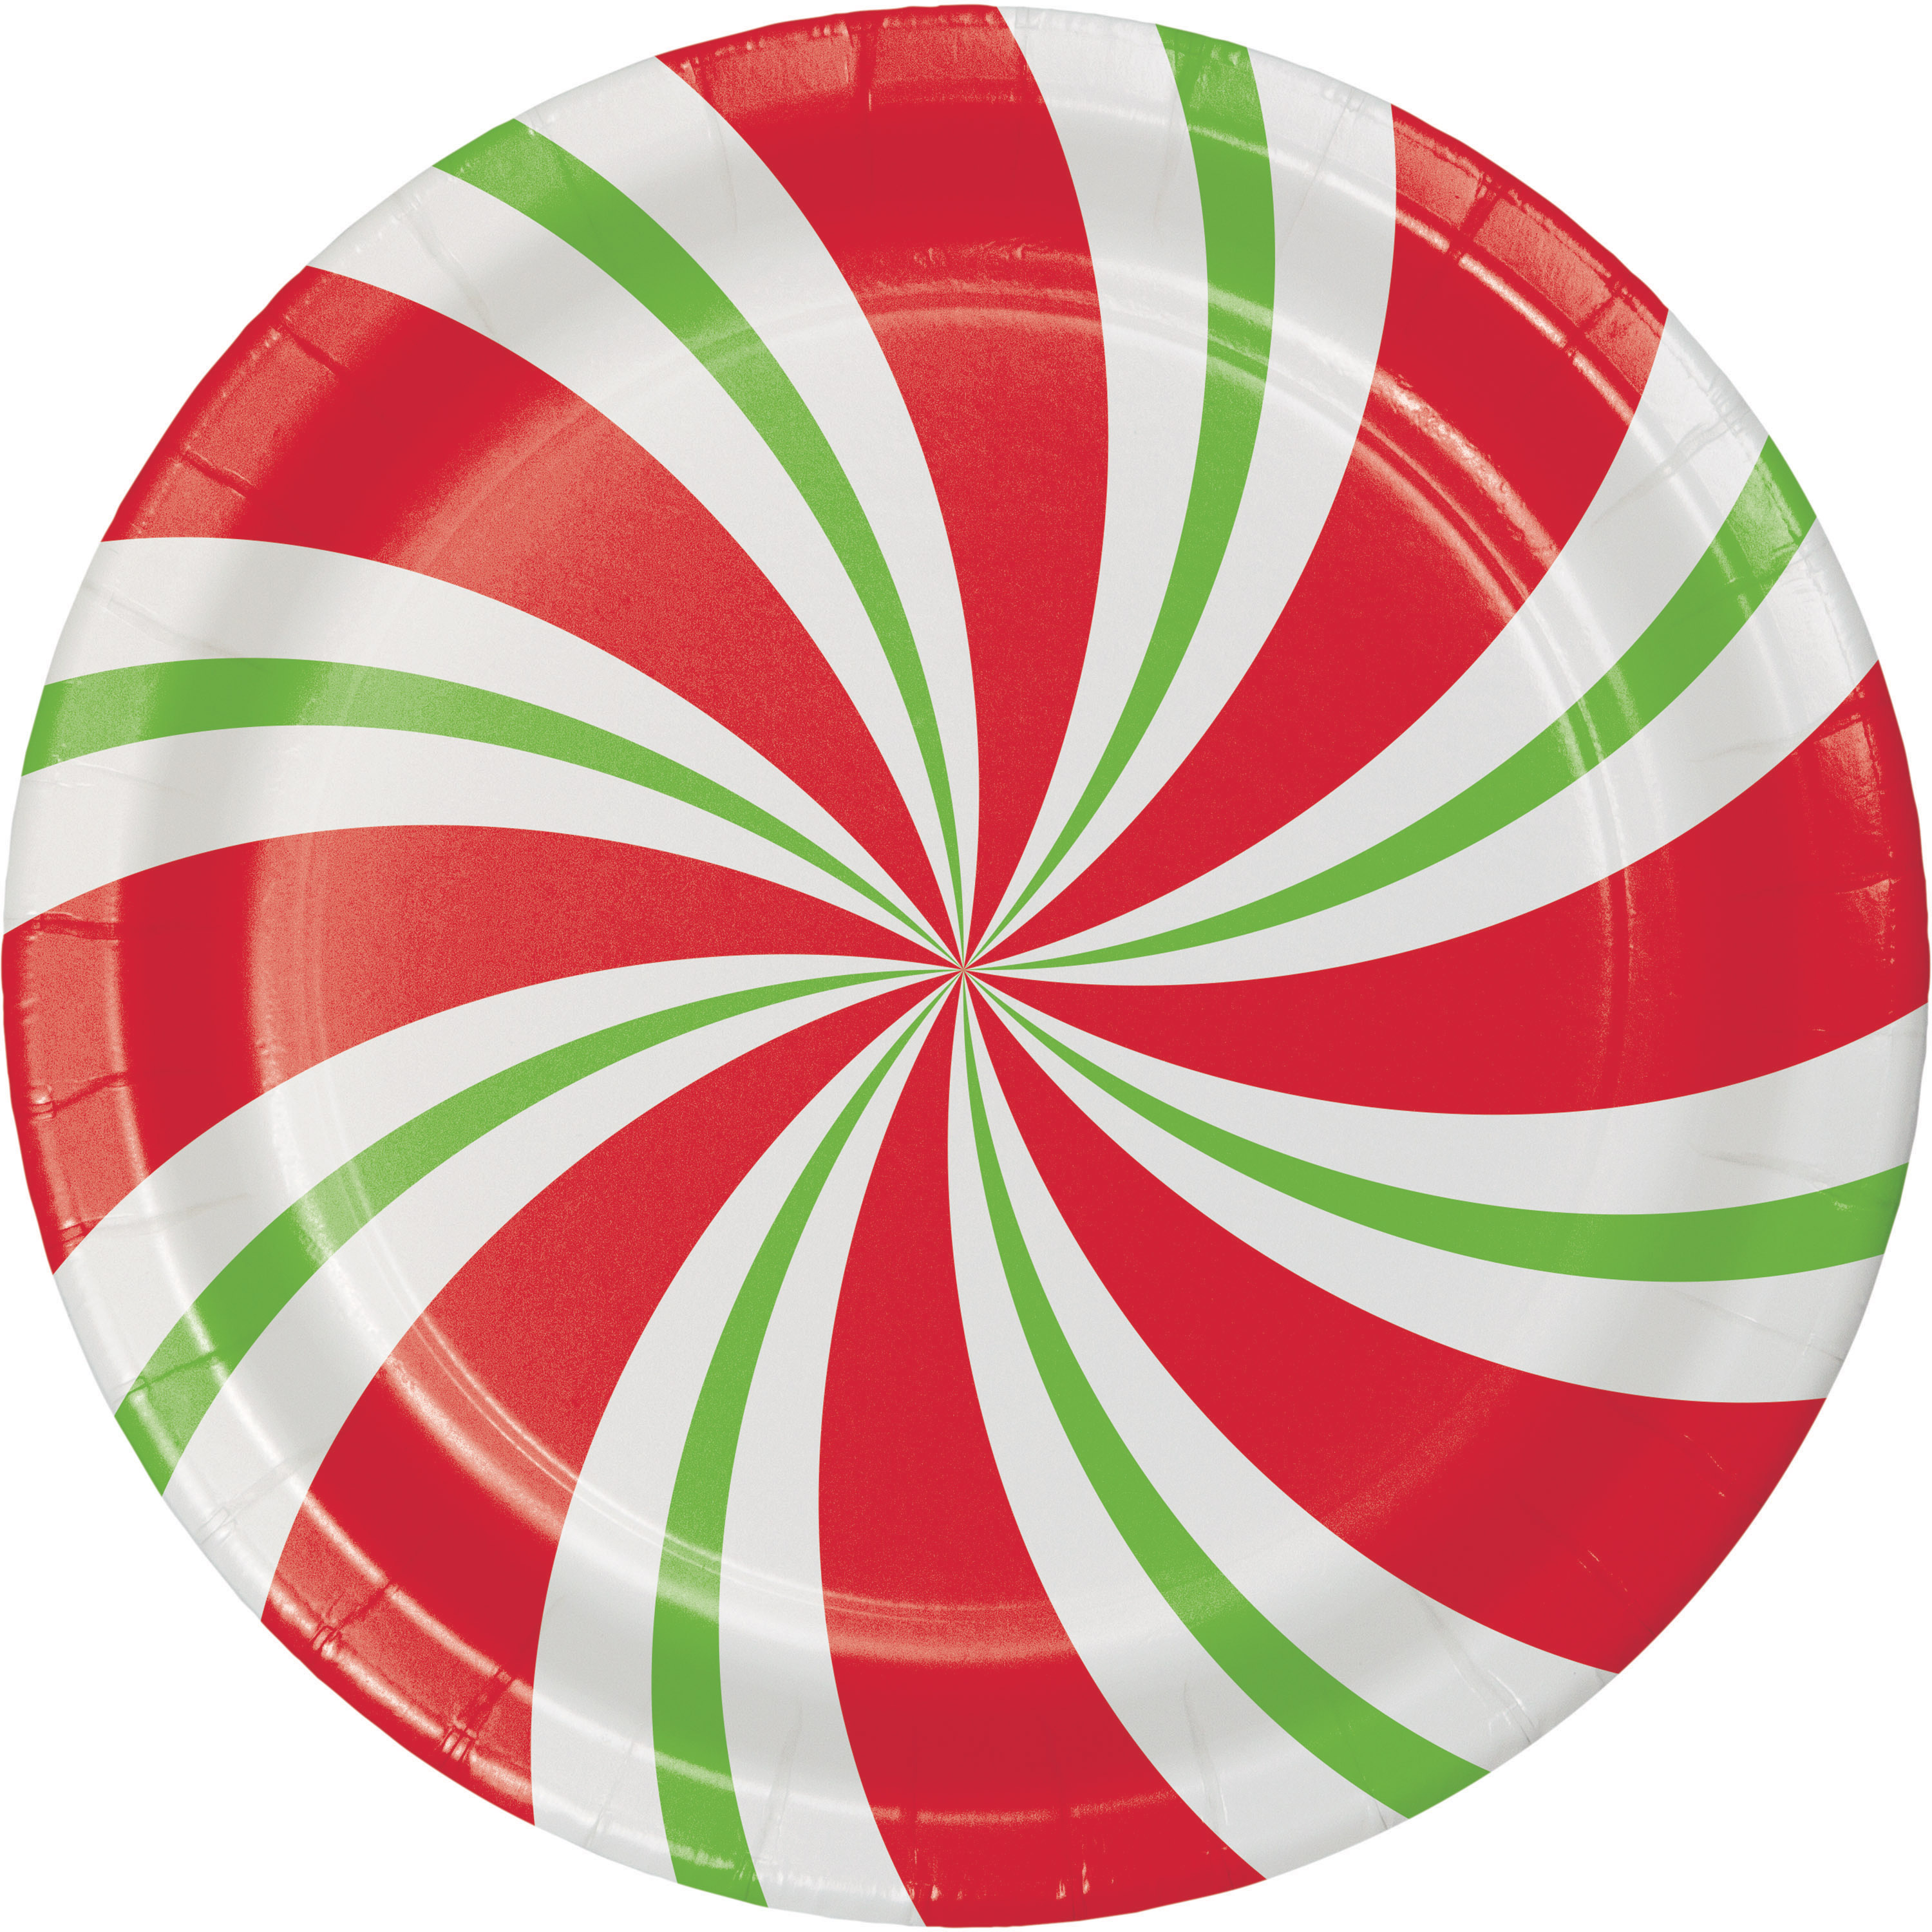 Peppermint Party Paper Plates 8 pack  sc 1 st  Walmart & Peppermint Party Paper Plates 8 pack - Walmart.com